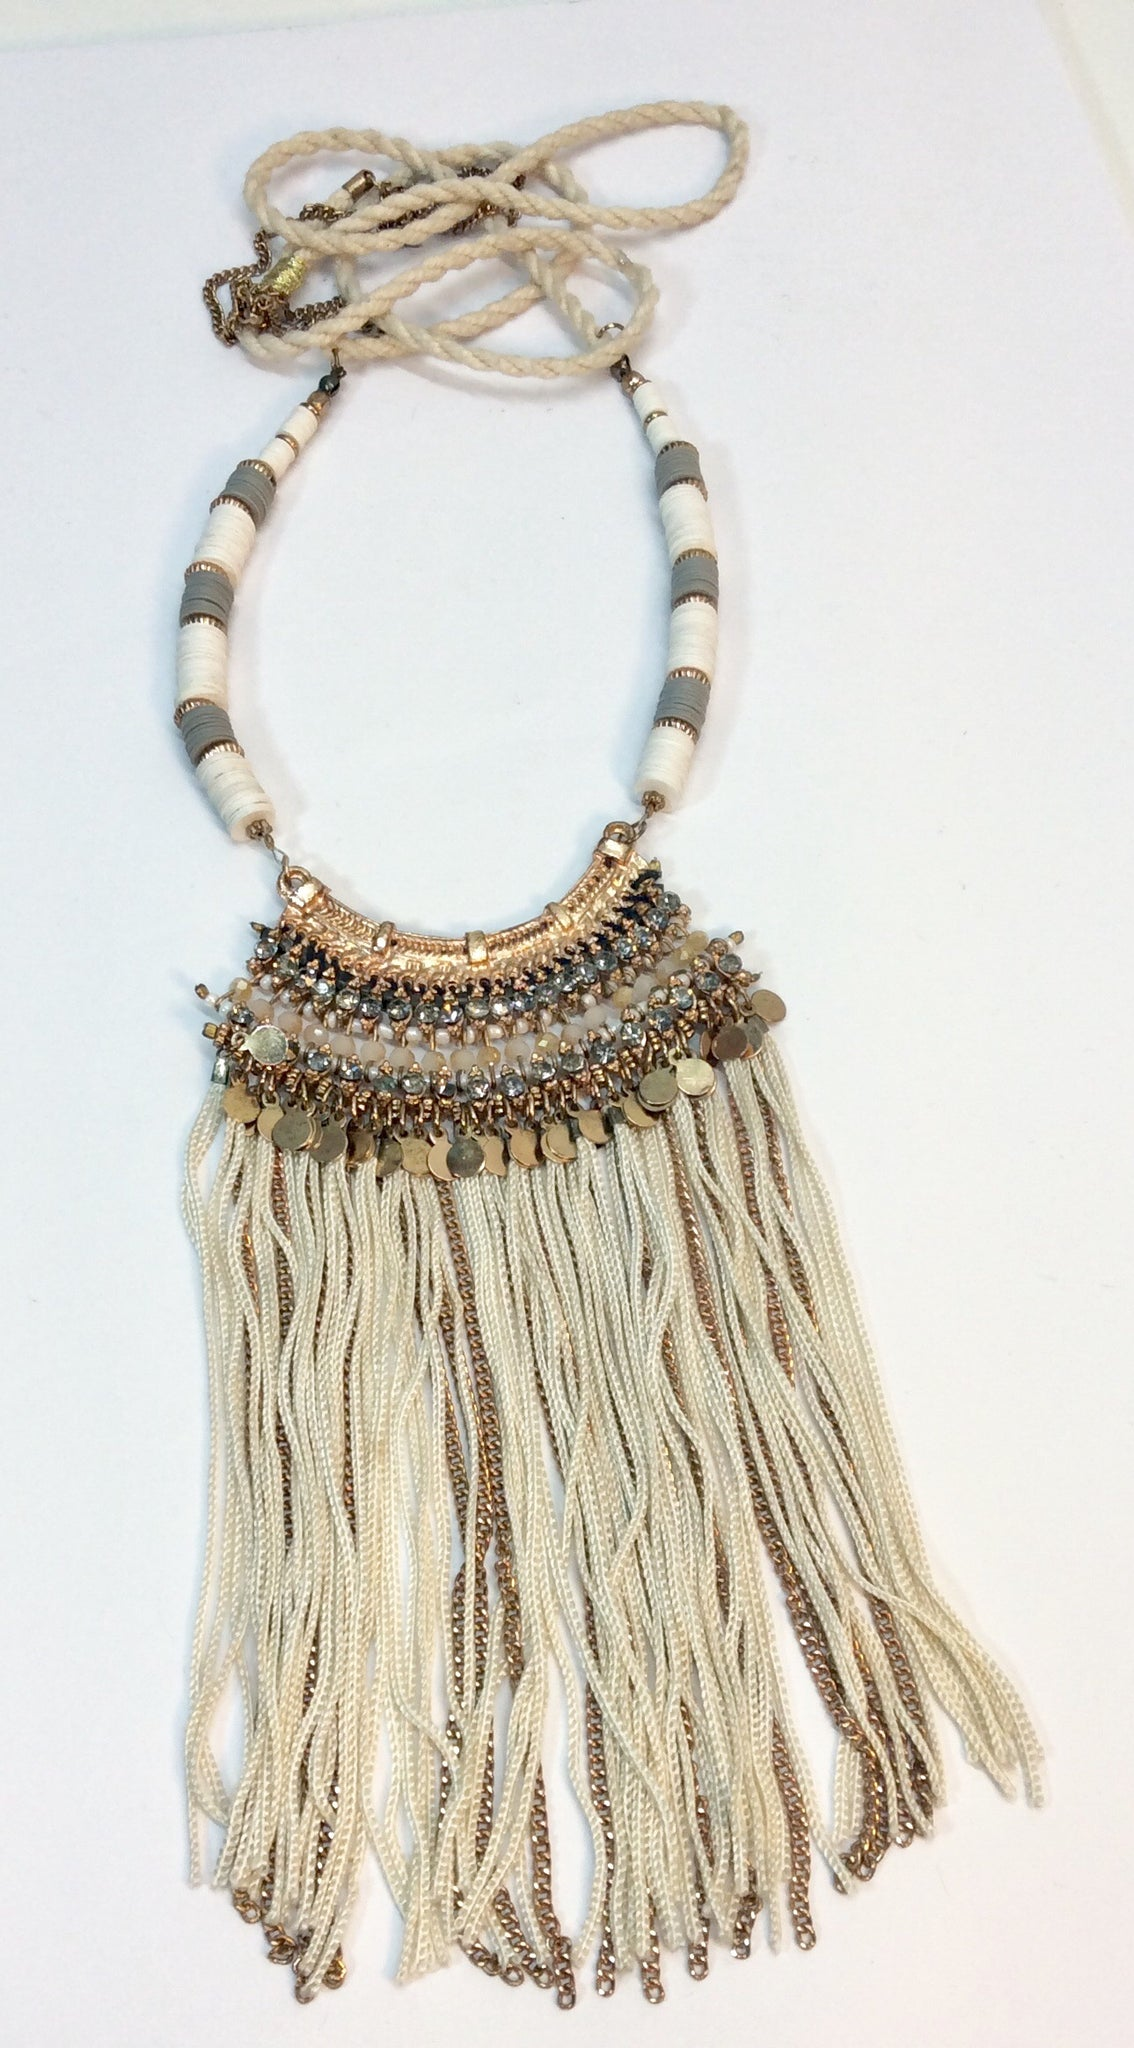 Oriental inspired long sequin and beaded necklace with tassels